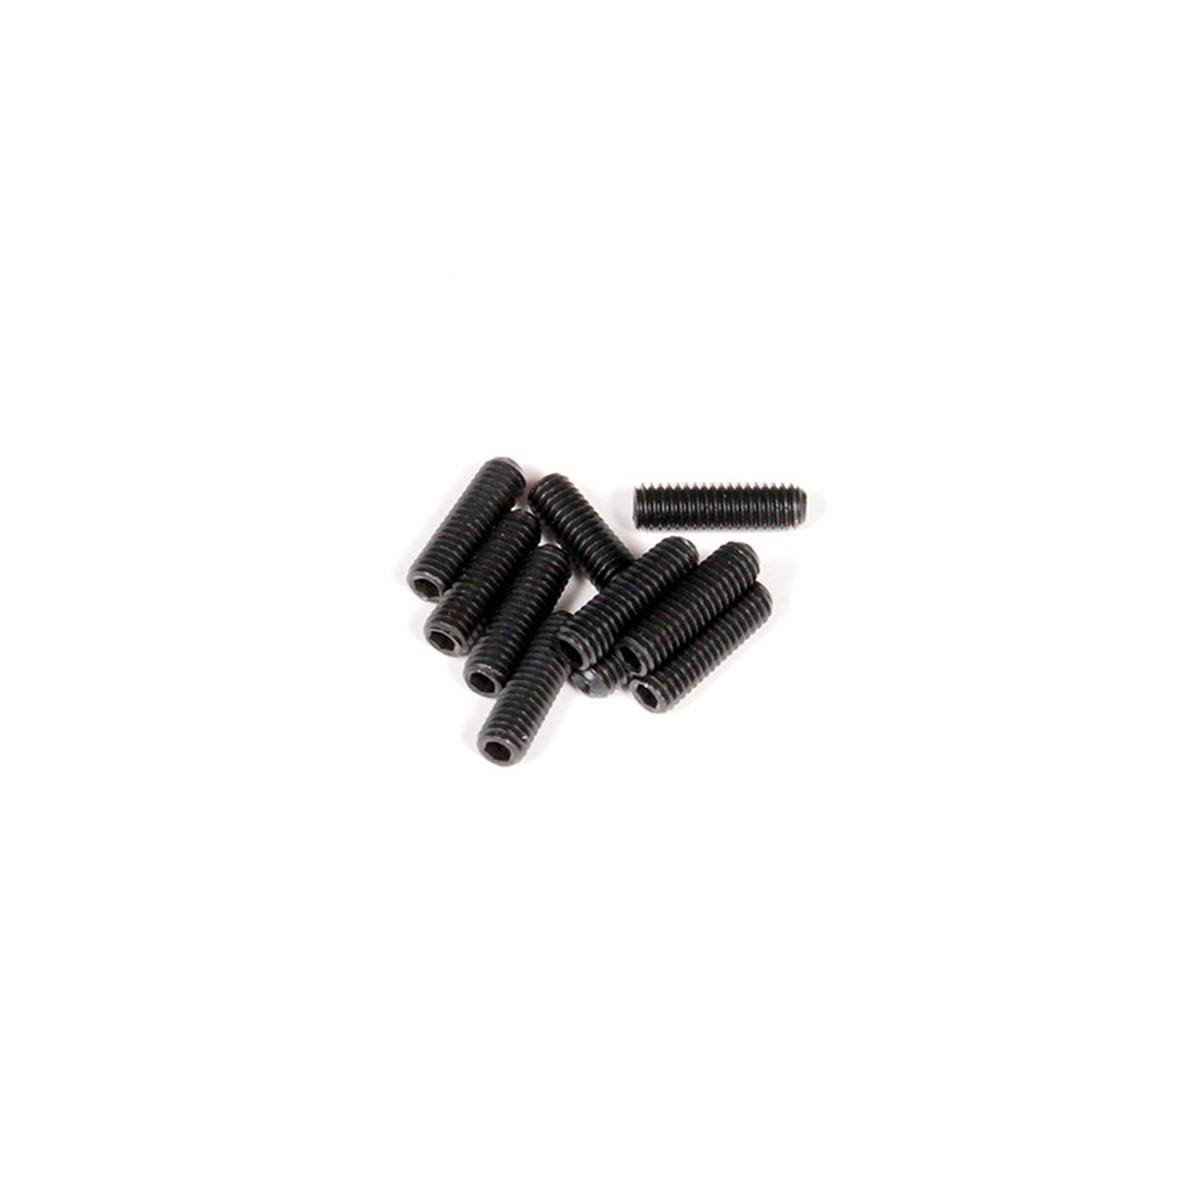 Axial Racing Set Screw